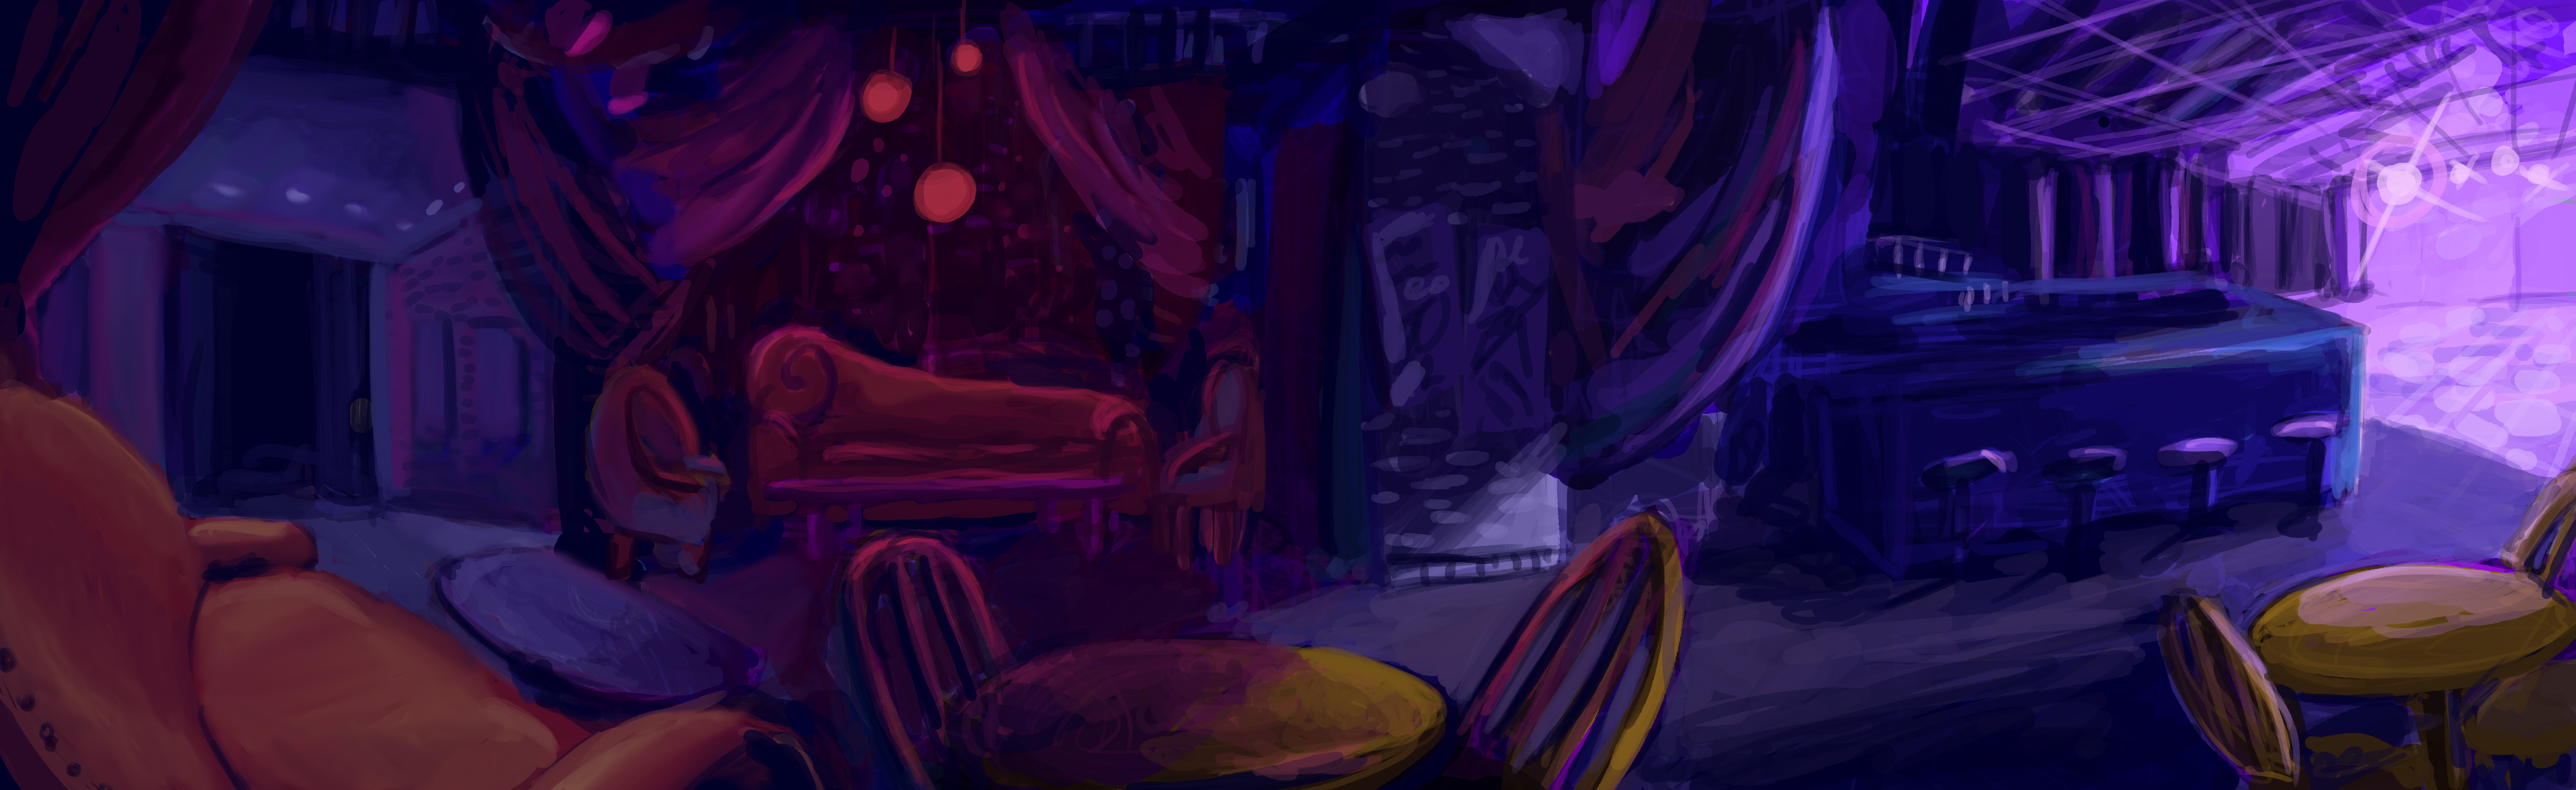 scene2background.png